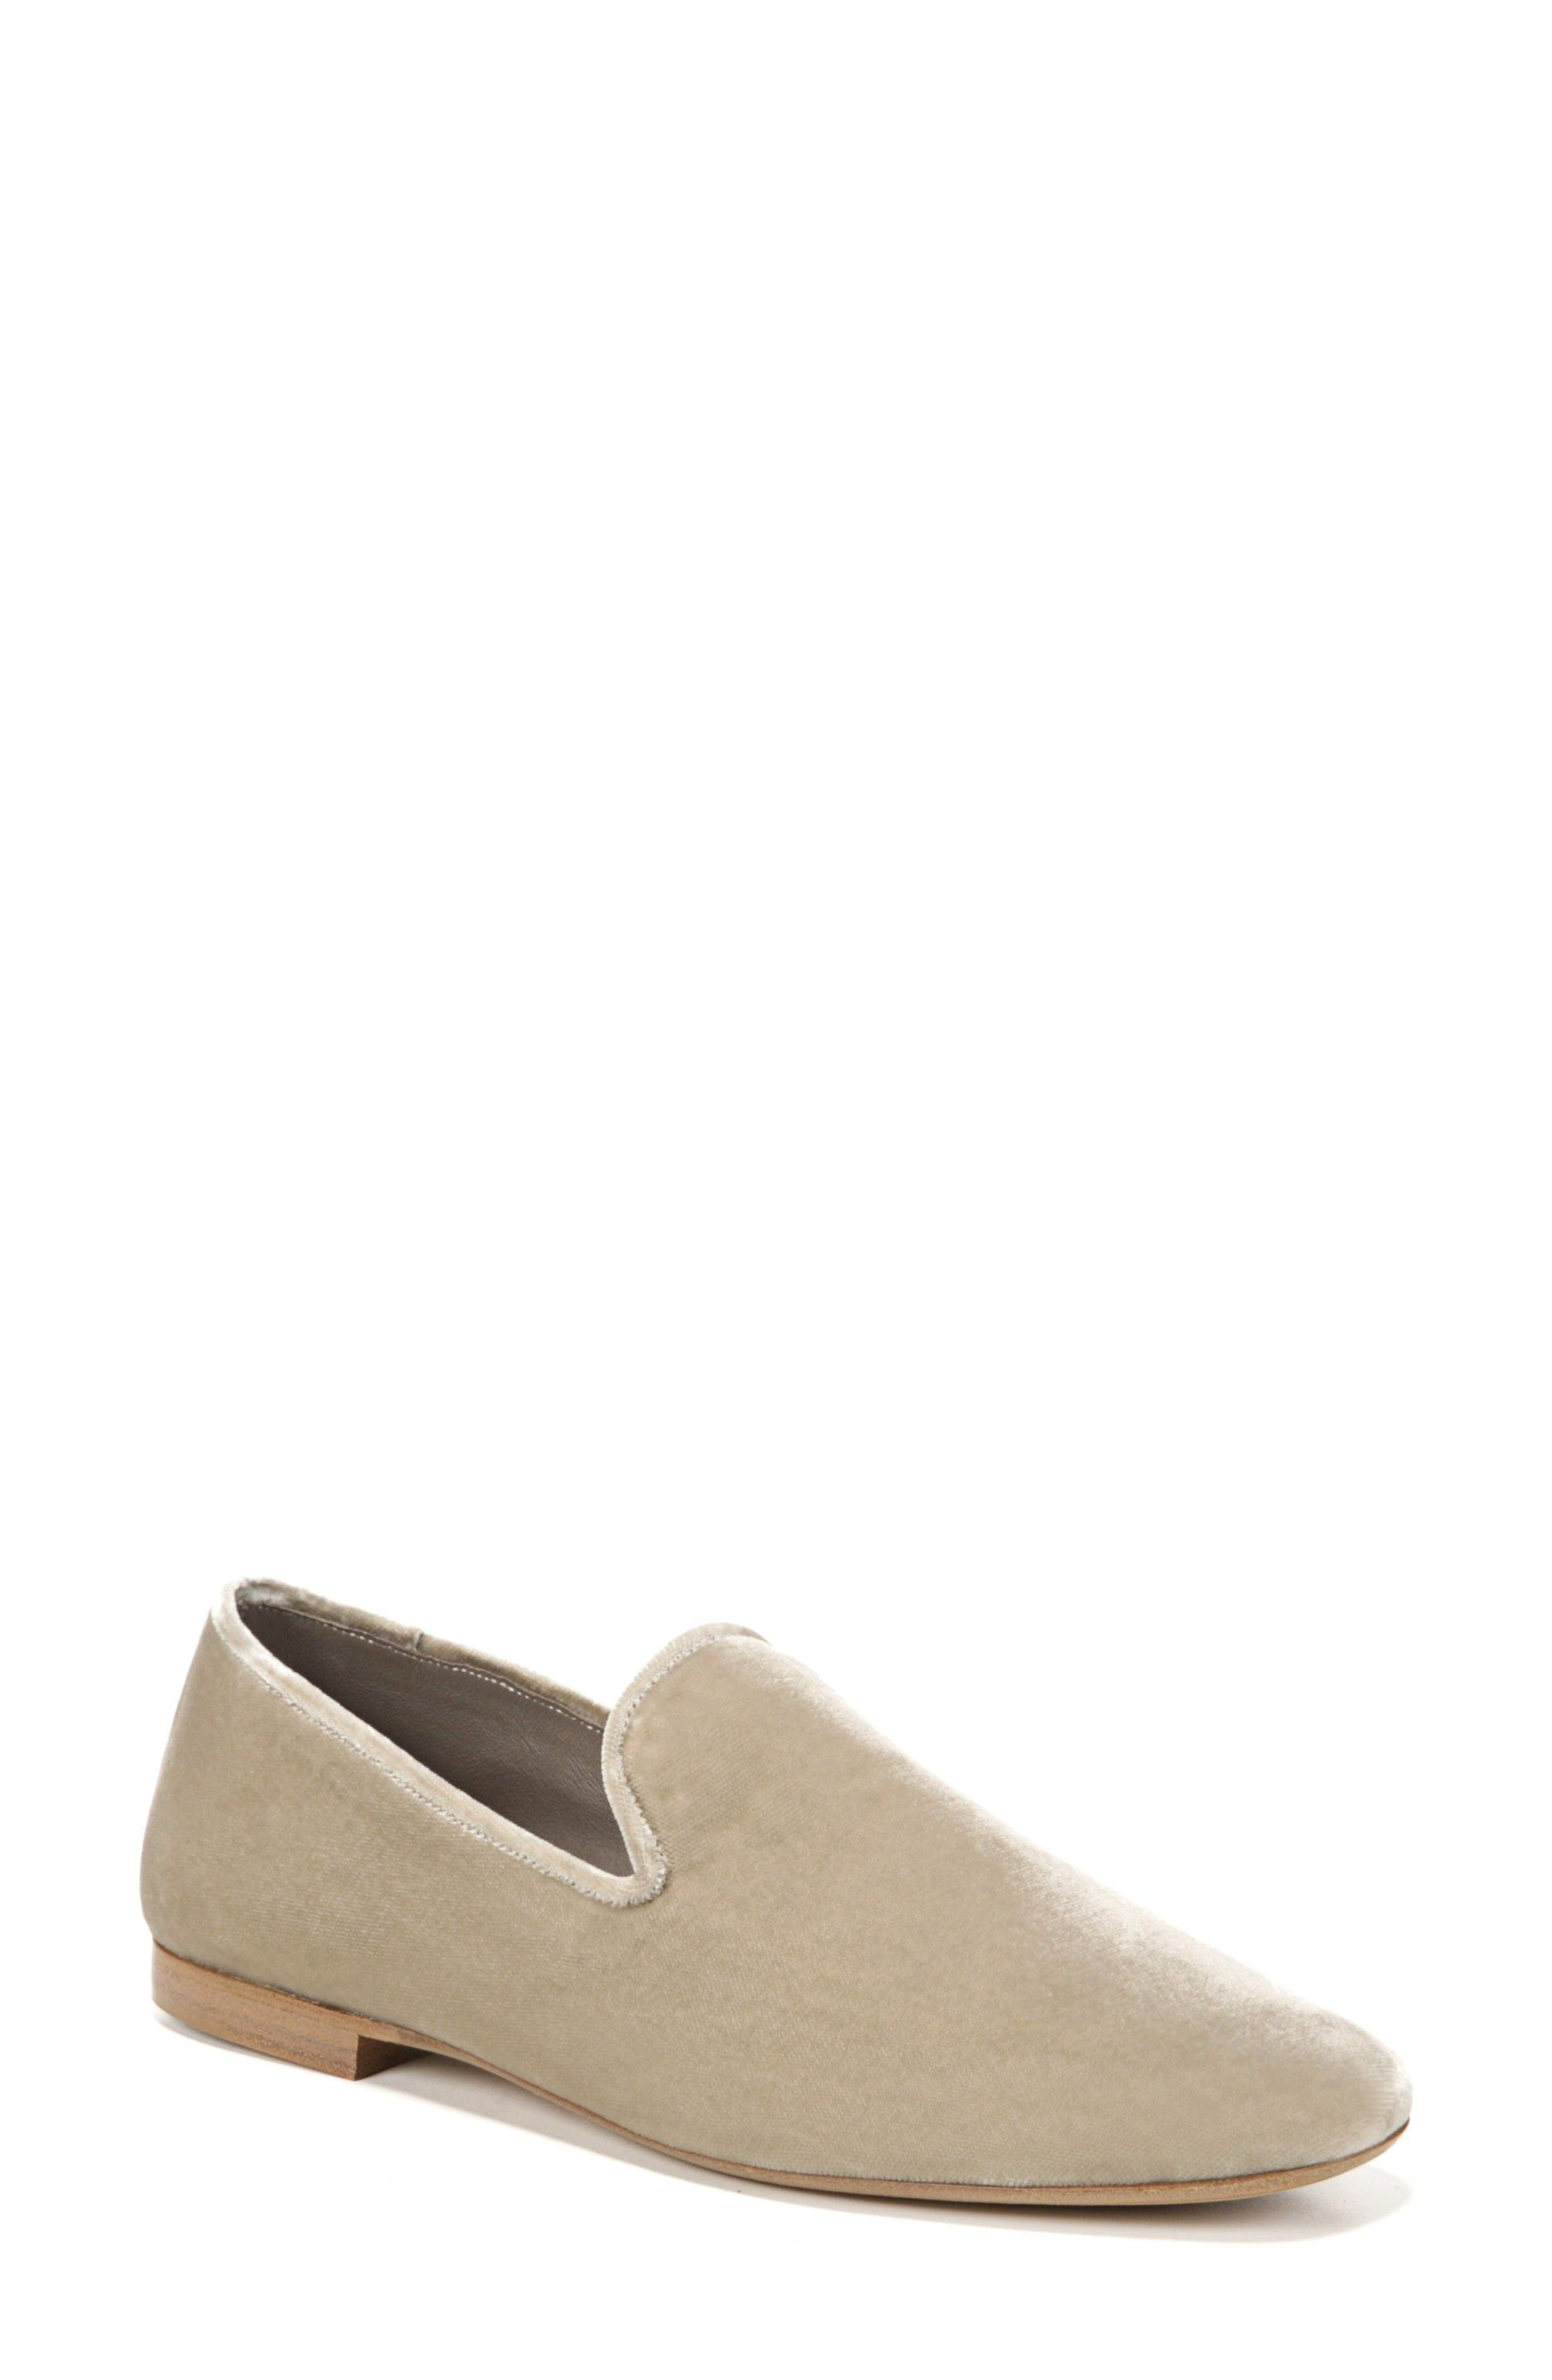 'Bray' Loafer,                         Main,                         color, 024